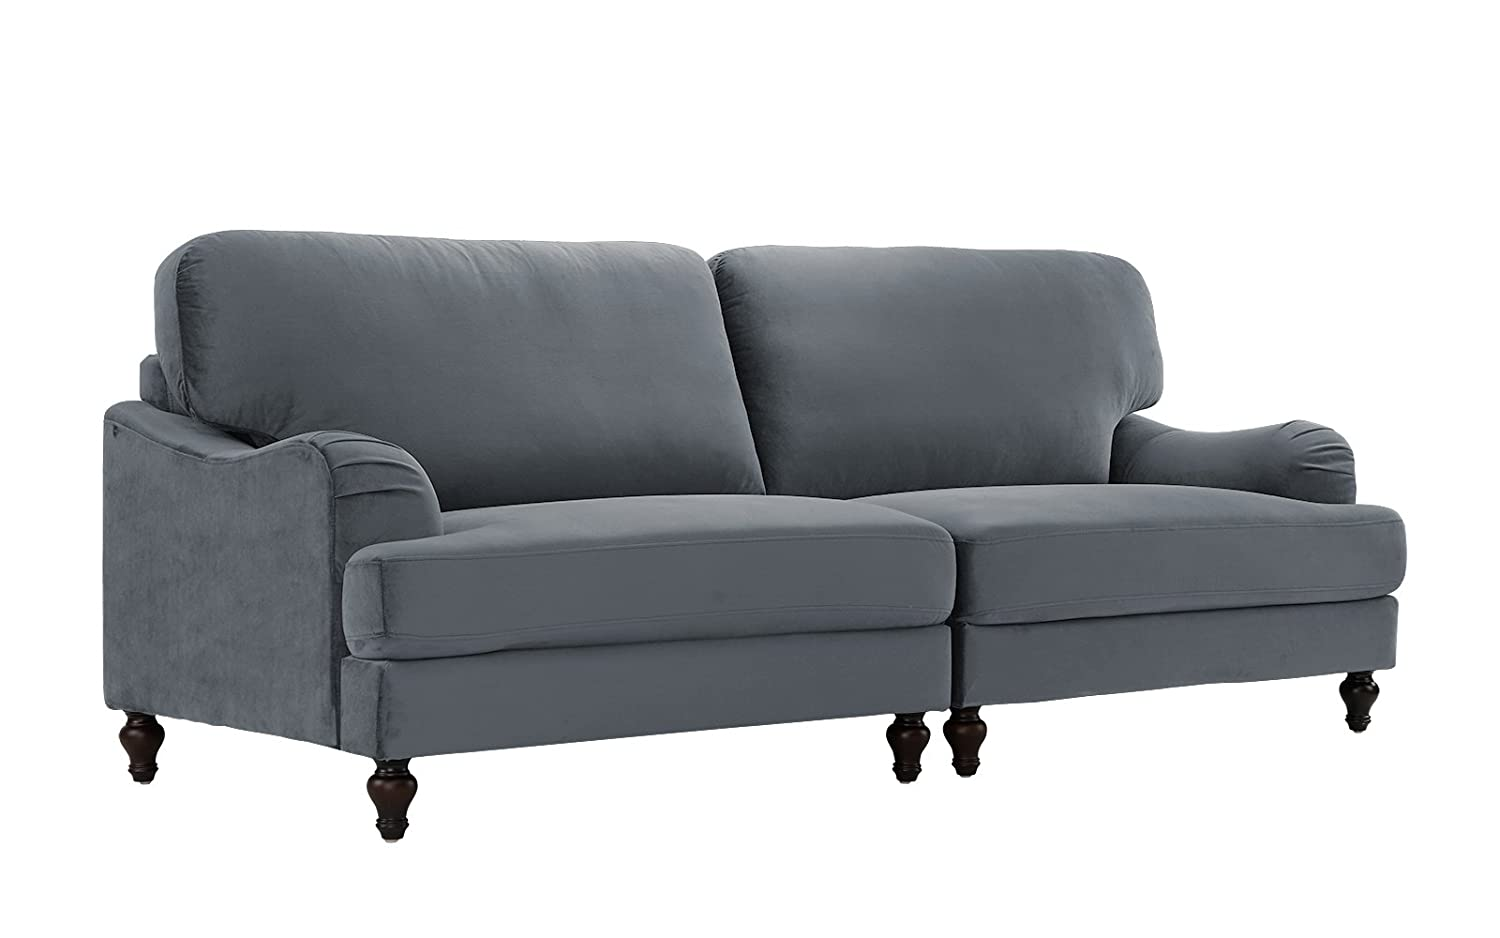 Classic 2 Piece Velvet Convertible Living Room Sofa, Adjustable Couch (Grey)